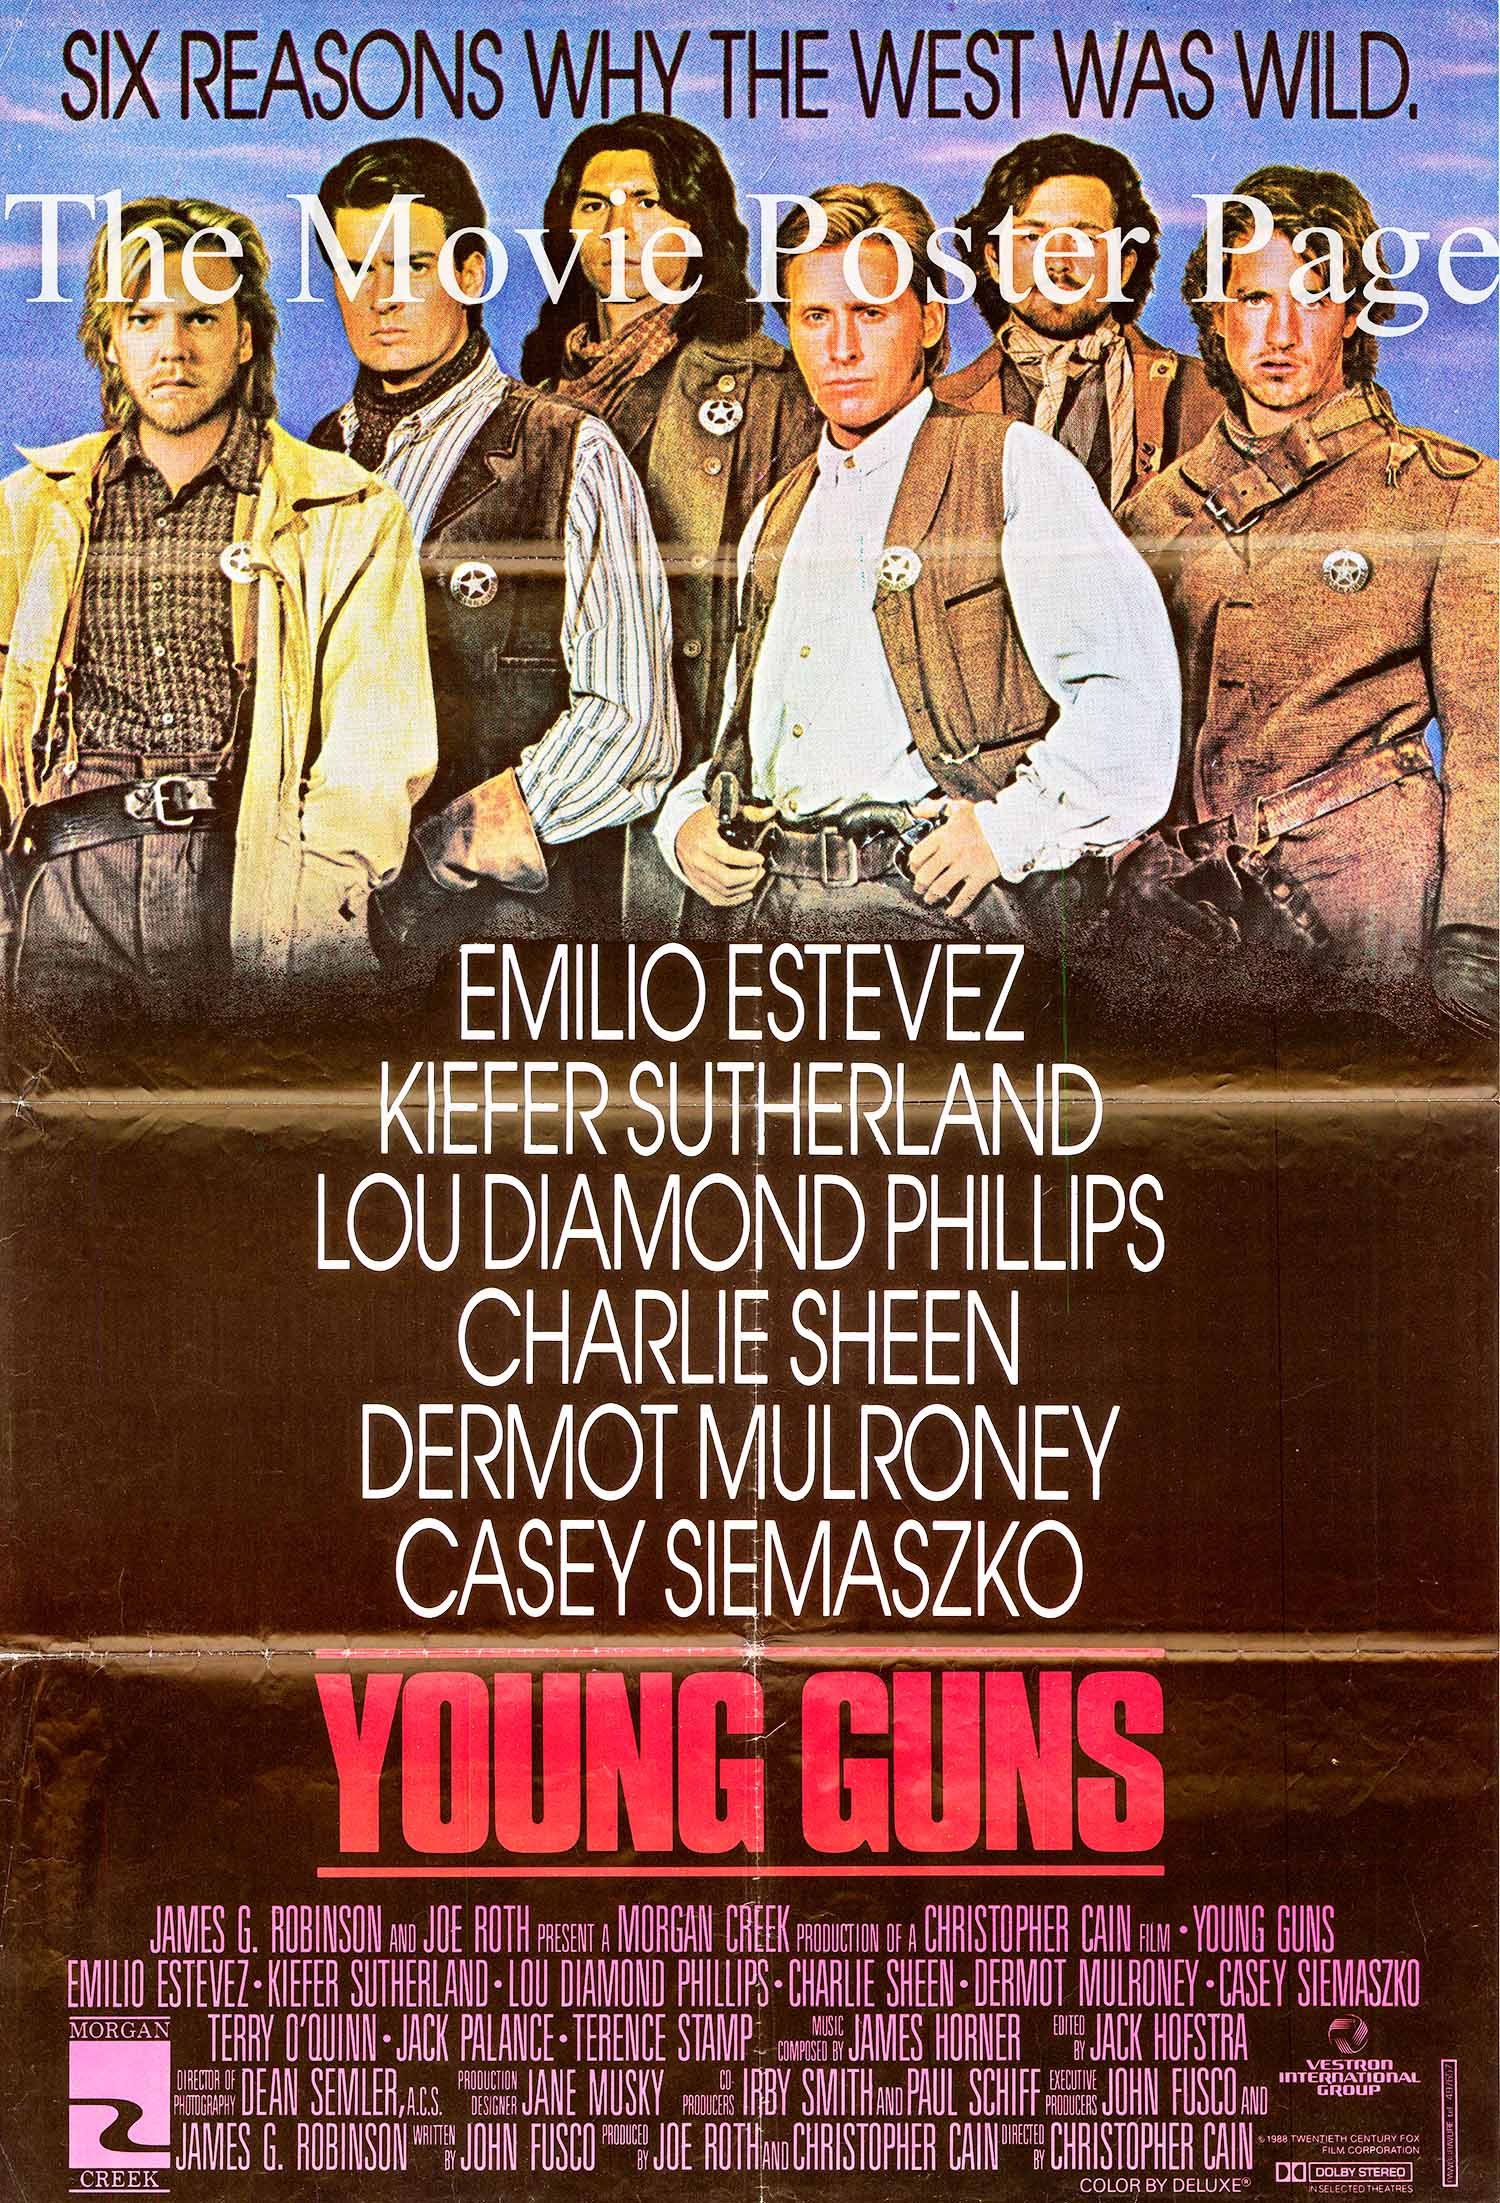 Pictured is a promotional poster for the 1988 Christopher Cain film Young Guns starring Emilio Estevez.